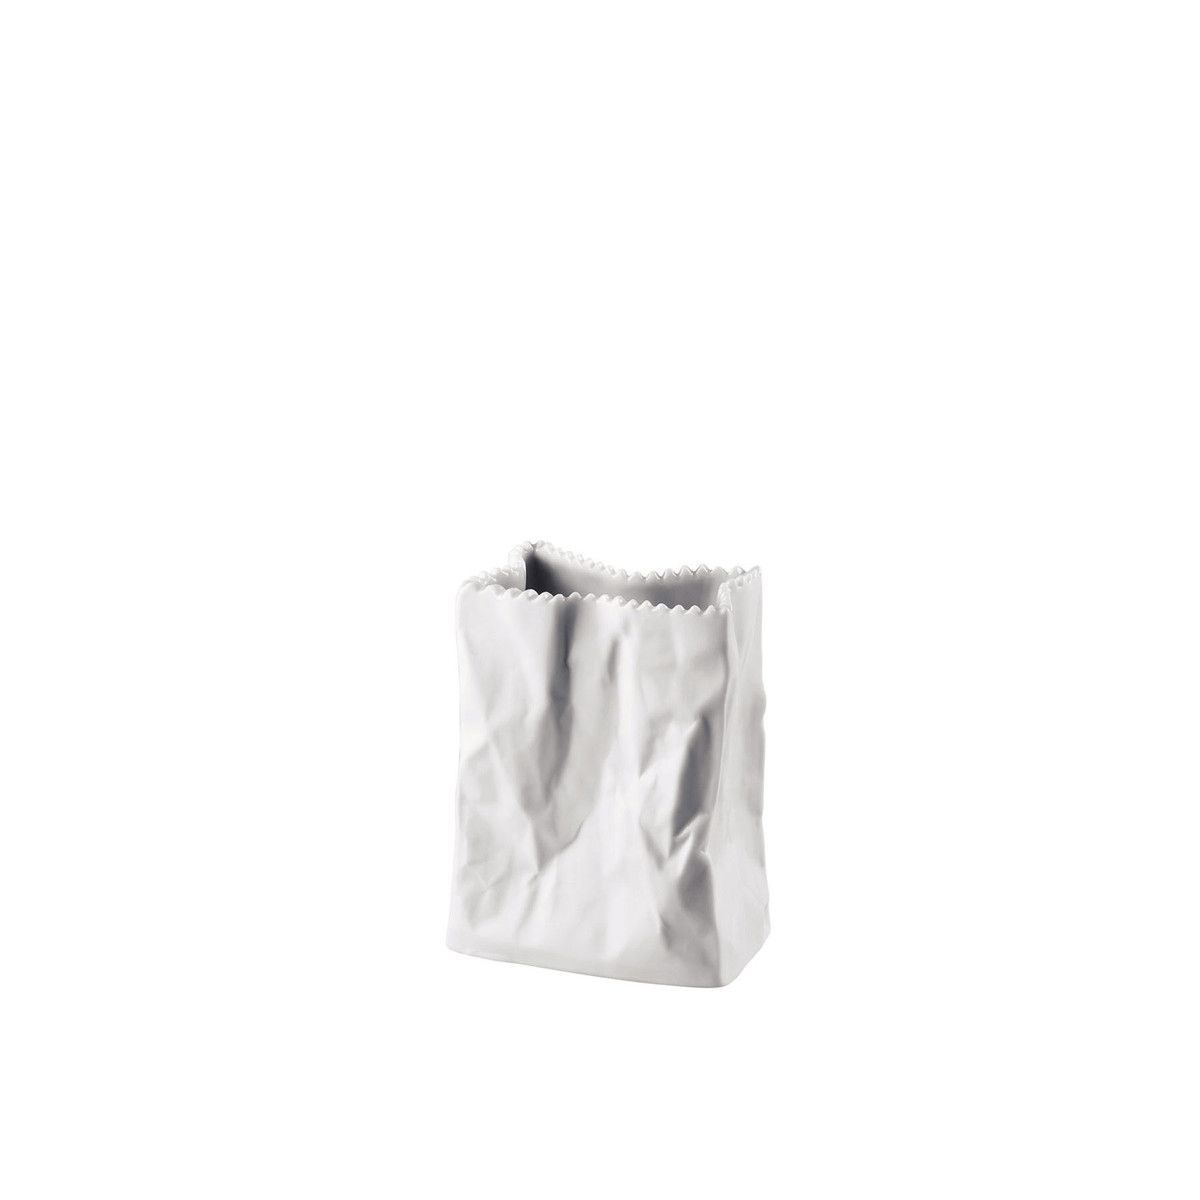 Rosenthal paper bag vase 10 cm white matt polished i could rosenthal paper bag vase 10 cm white matt polished floridaeventfo Gallery